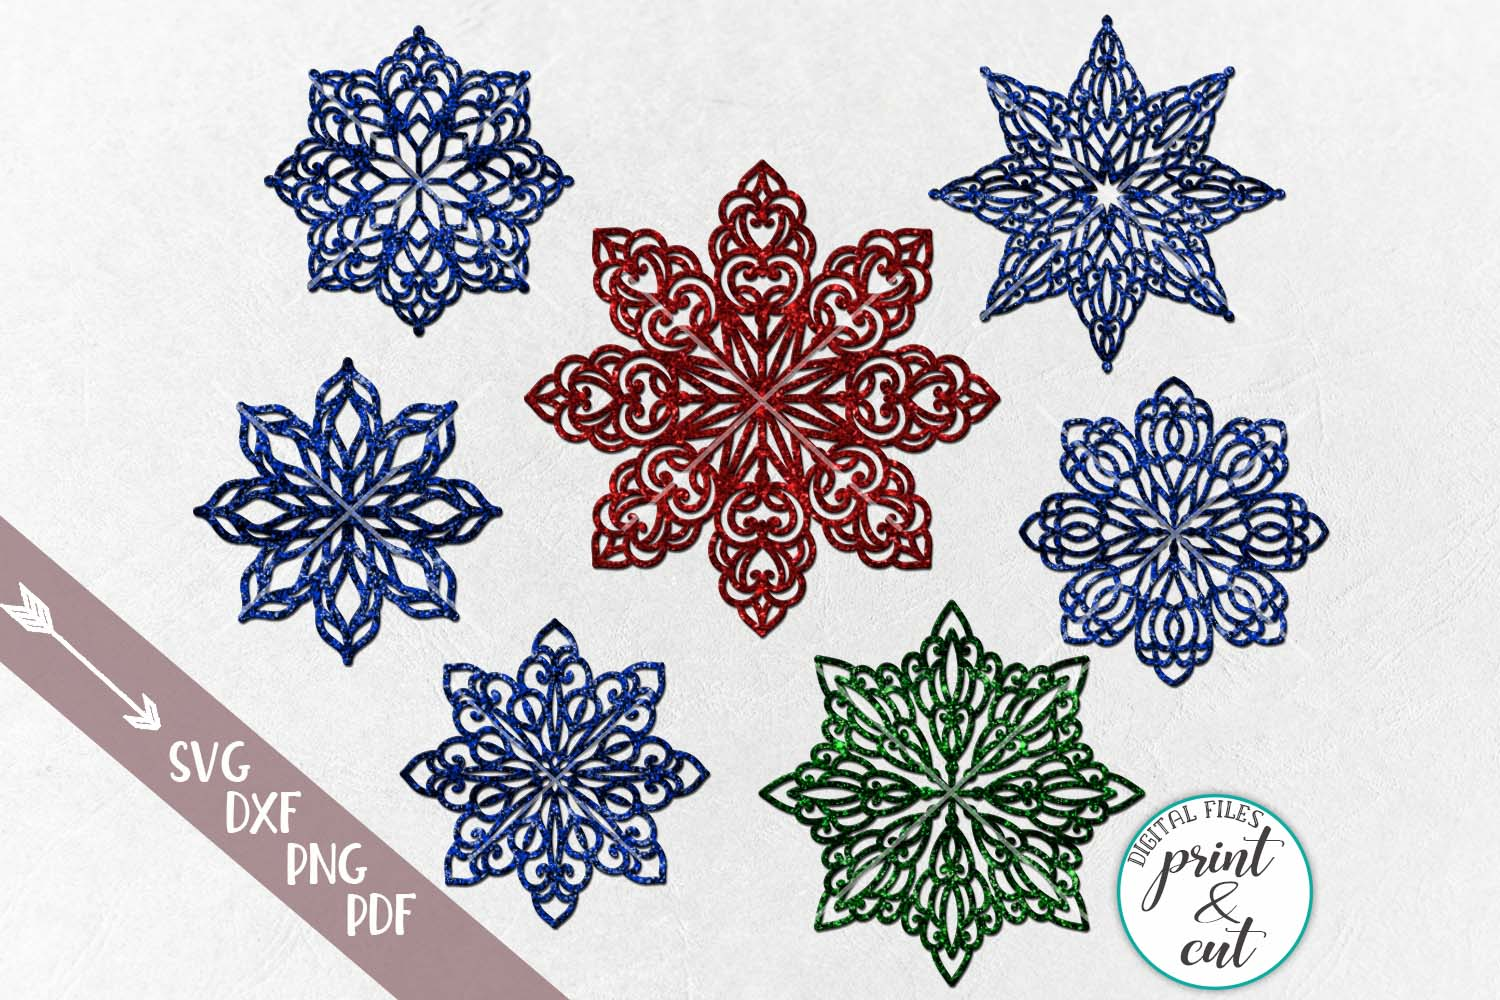 Download Free Luxury Snowflakes Graphic By Cornelia Creative Fabrica for Cricut Explore, Silhouette and other cutting machines.